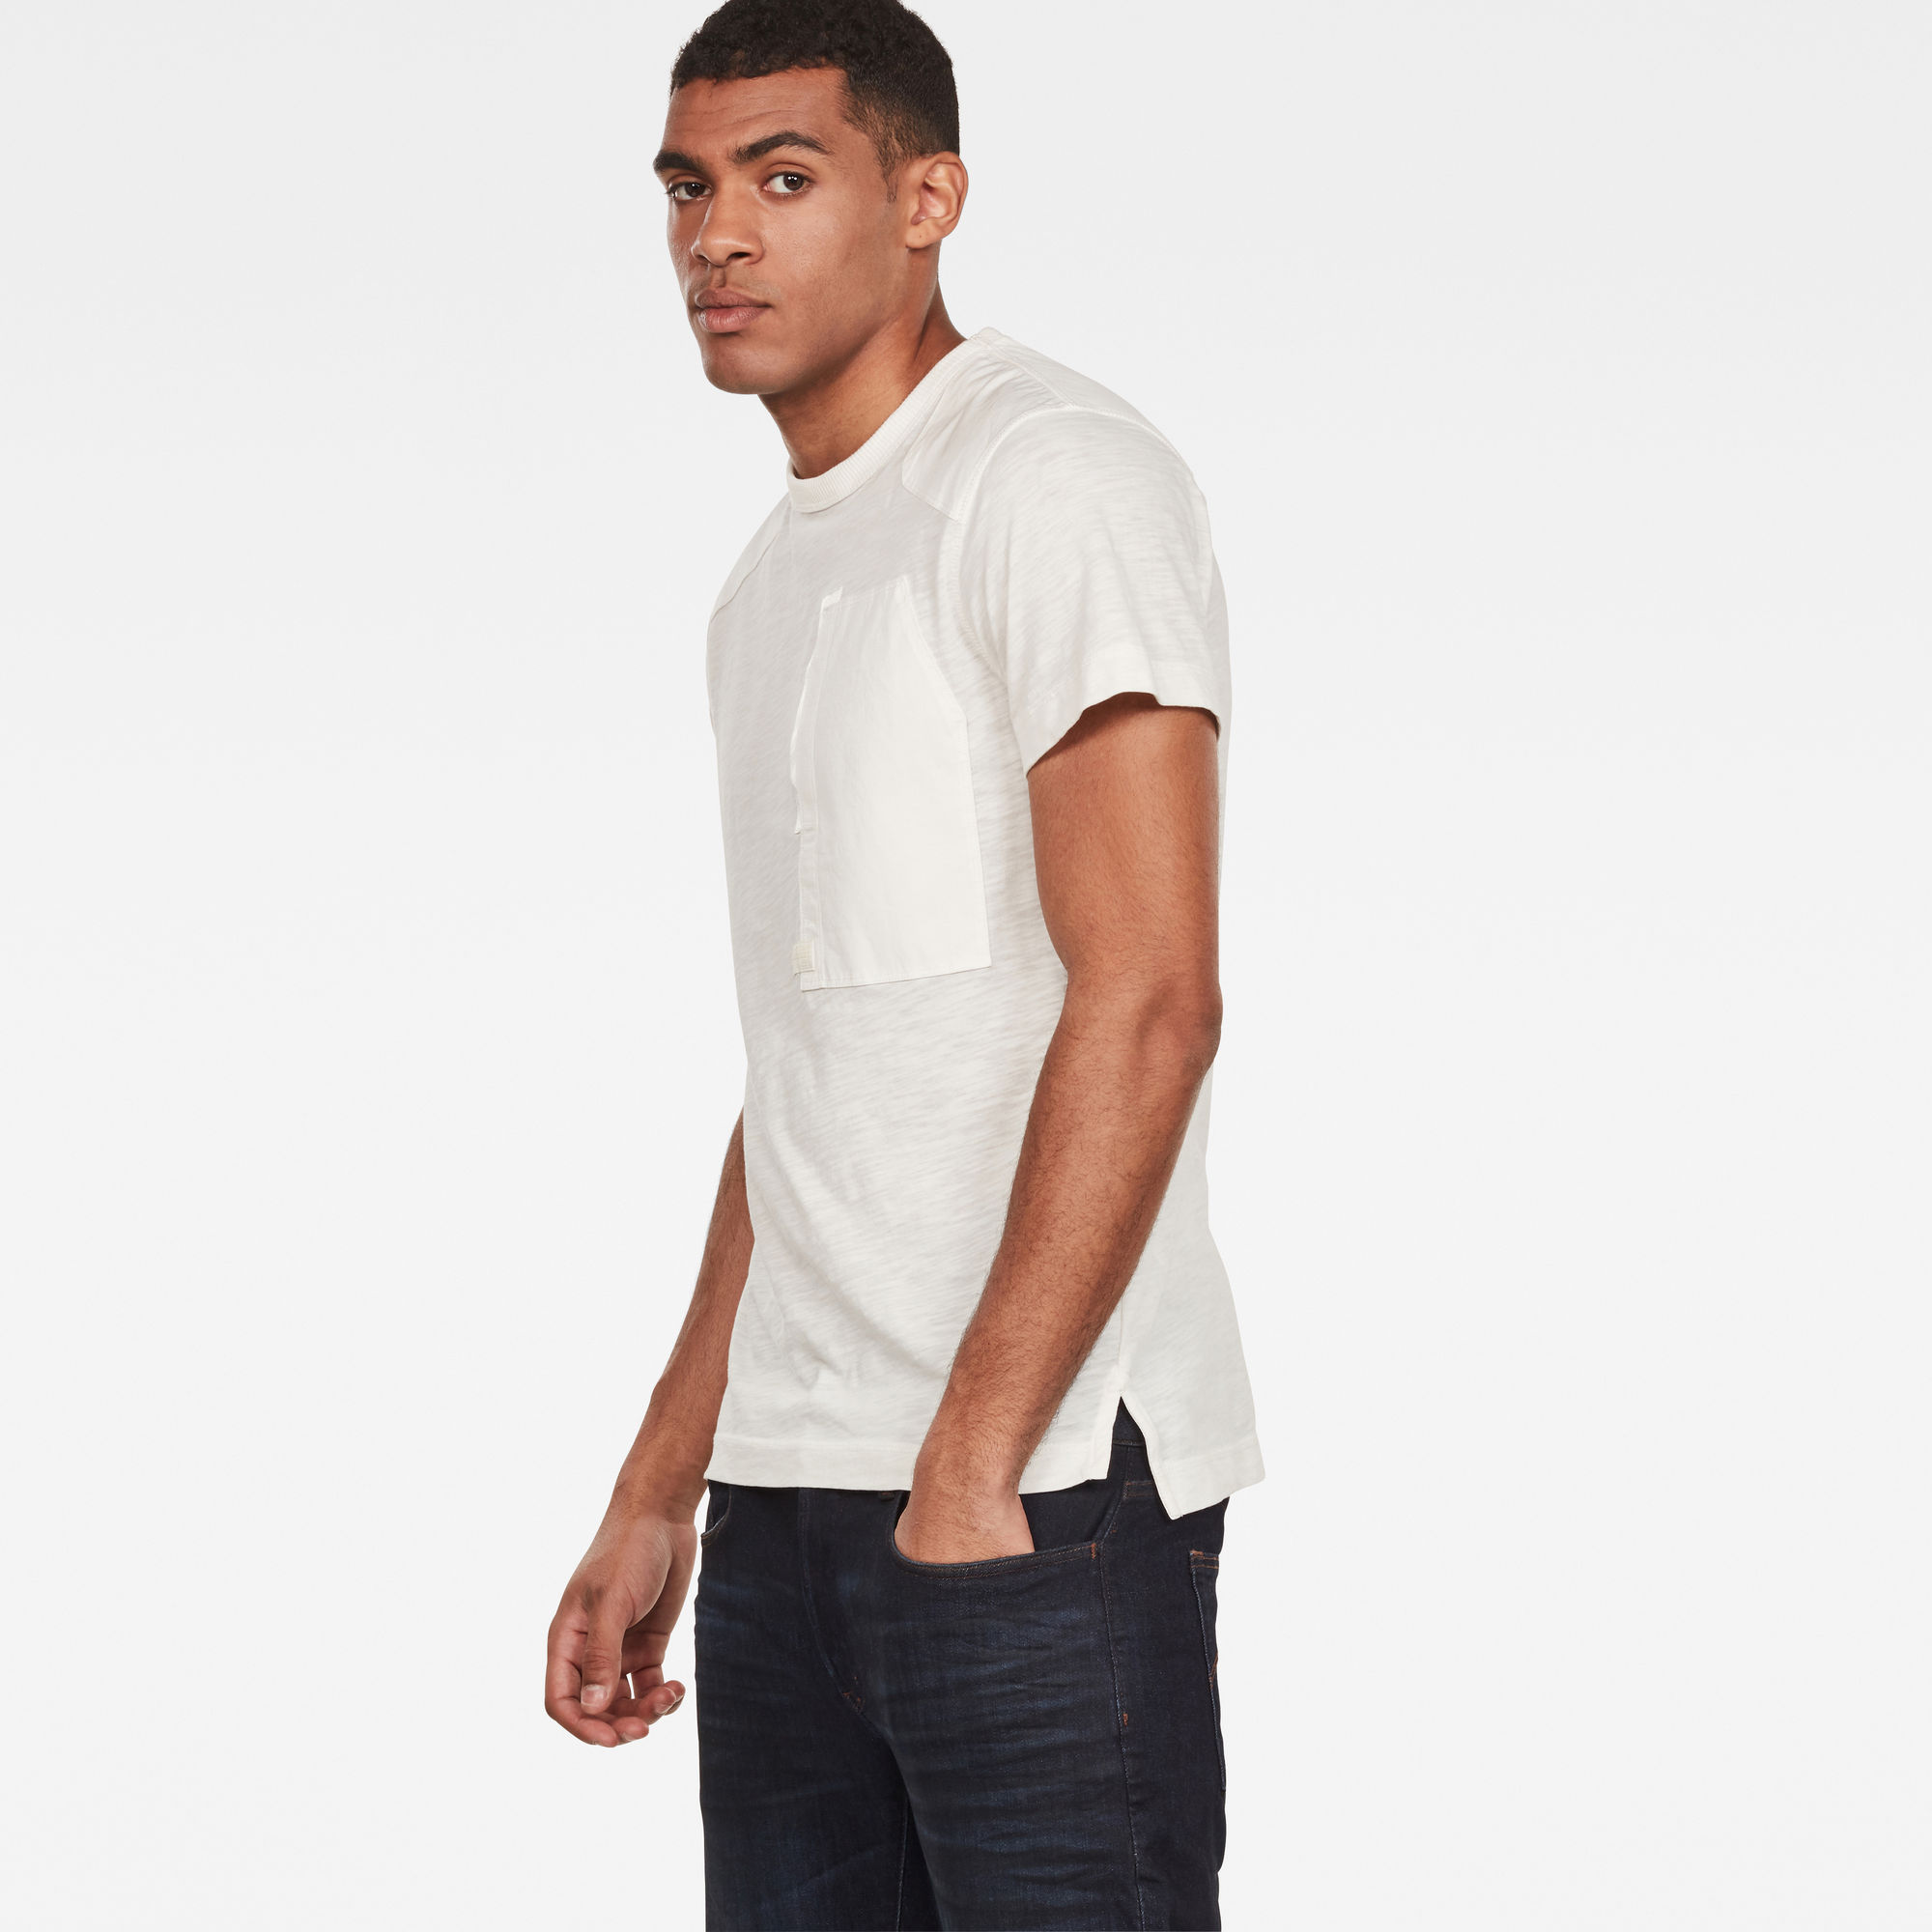 G-Star RAW Arris Pocket T-shirt